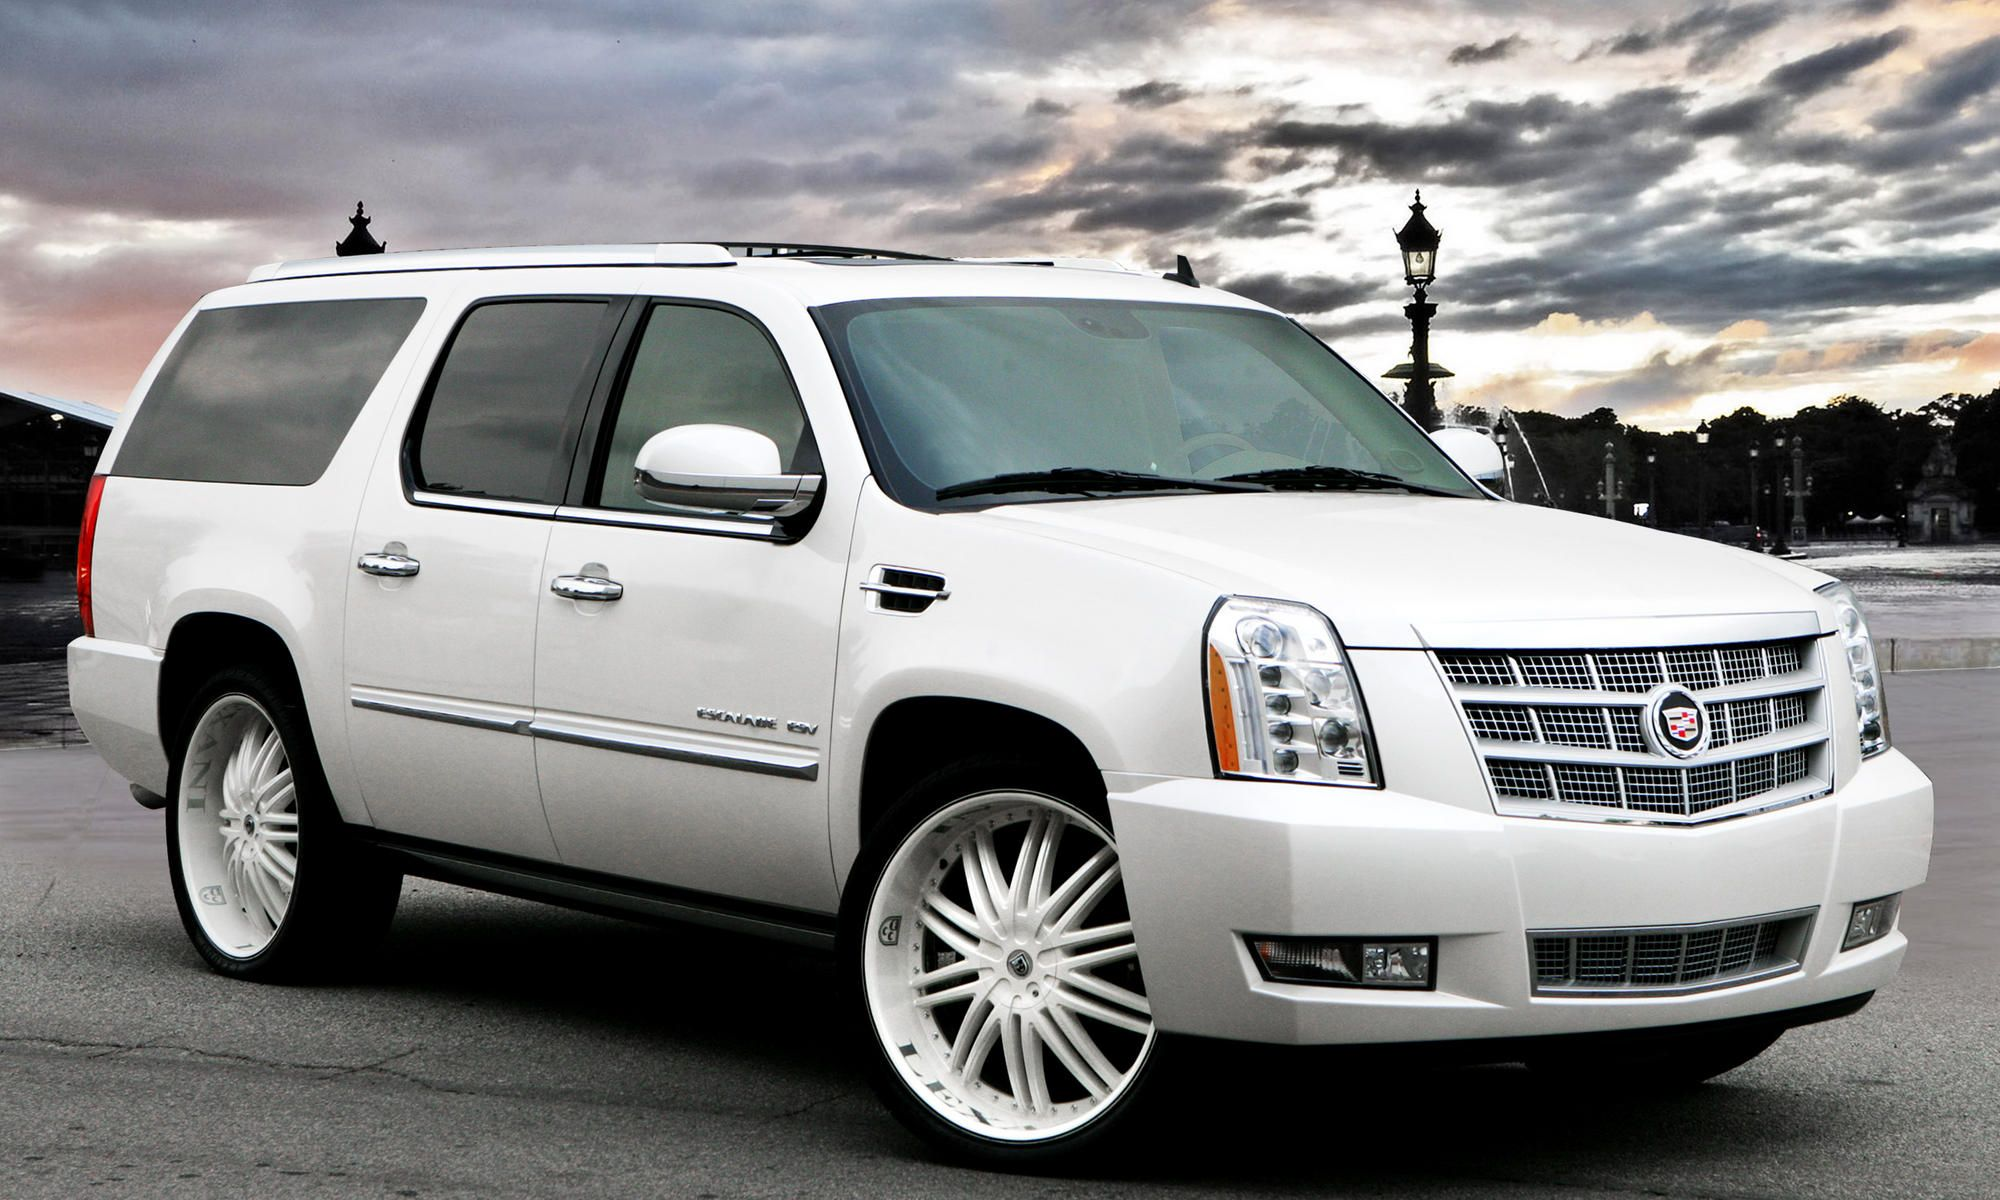 medium resolution of lexani wheels the leader in custom luxury wheels 2011 white cadillac escalade with custom white lx 10 wheels